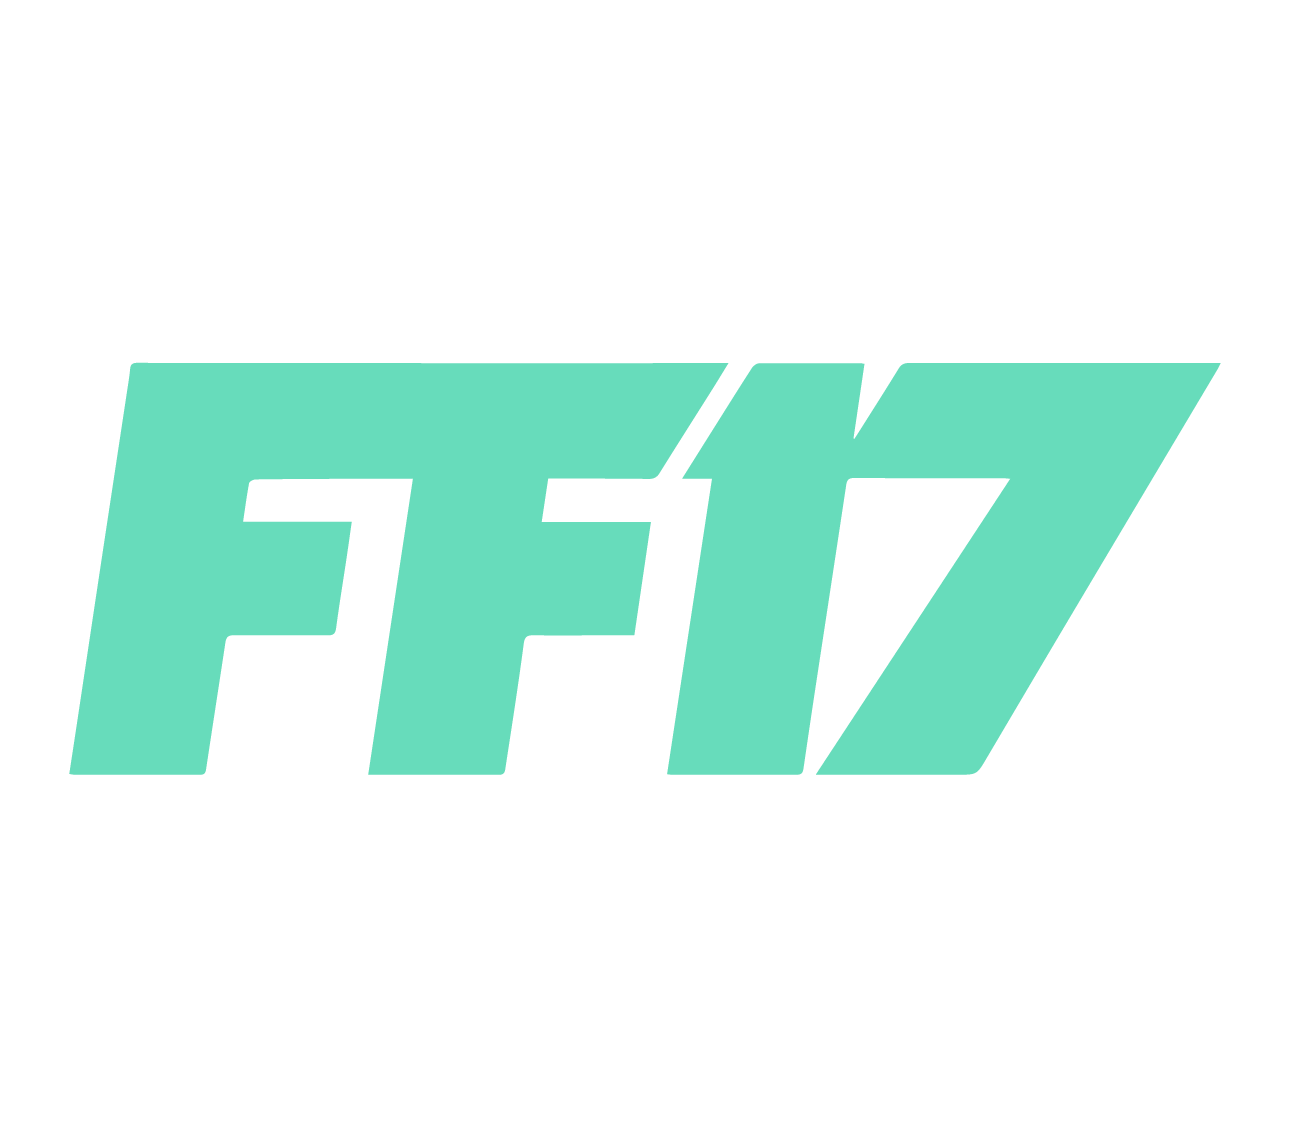 FF17-Logo-2019-square.png